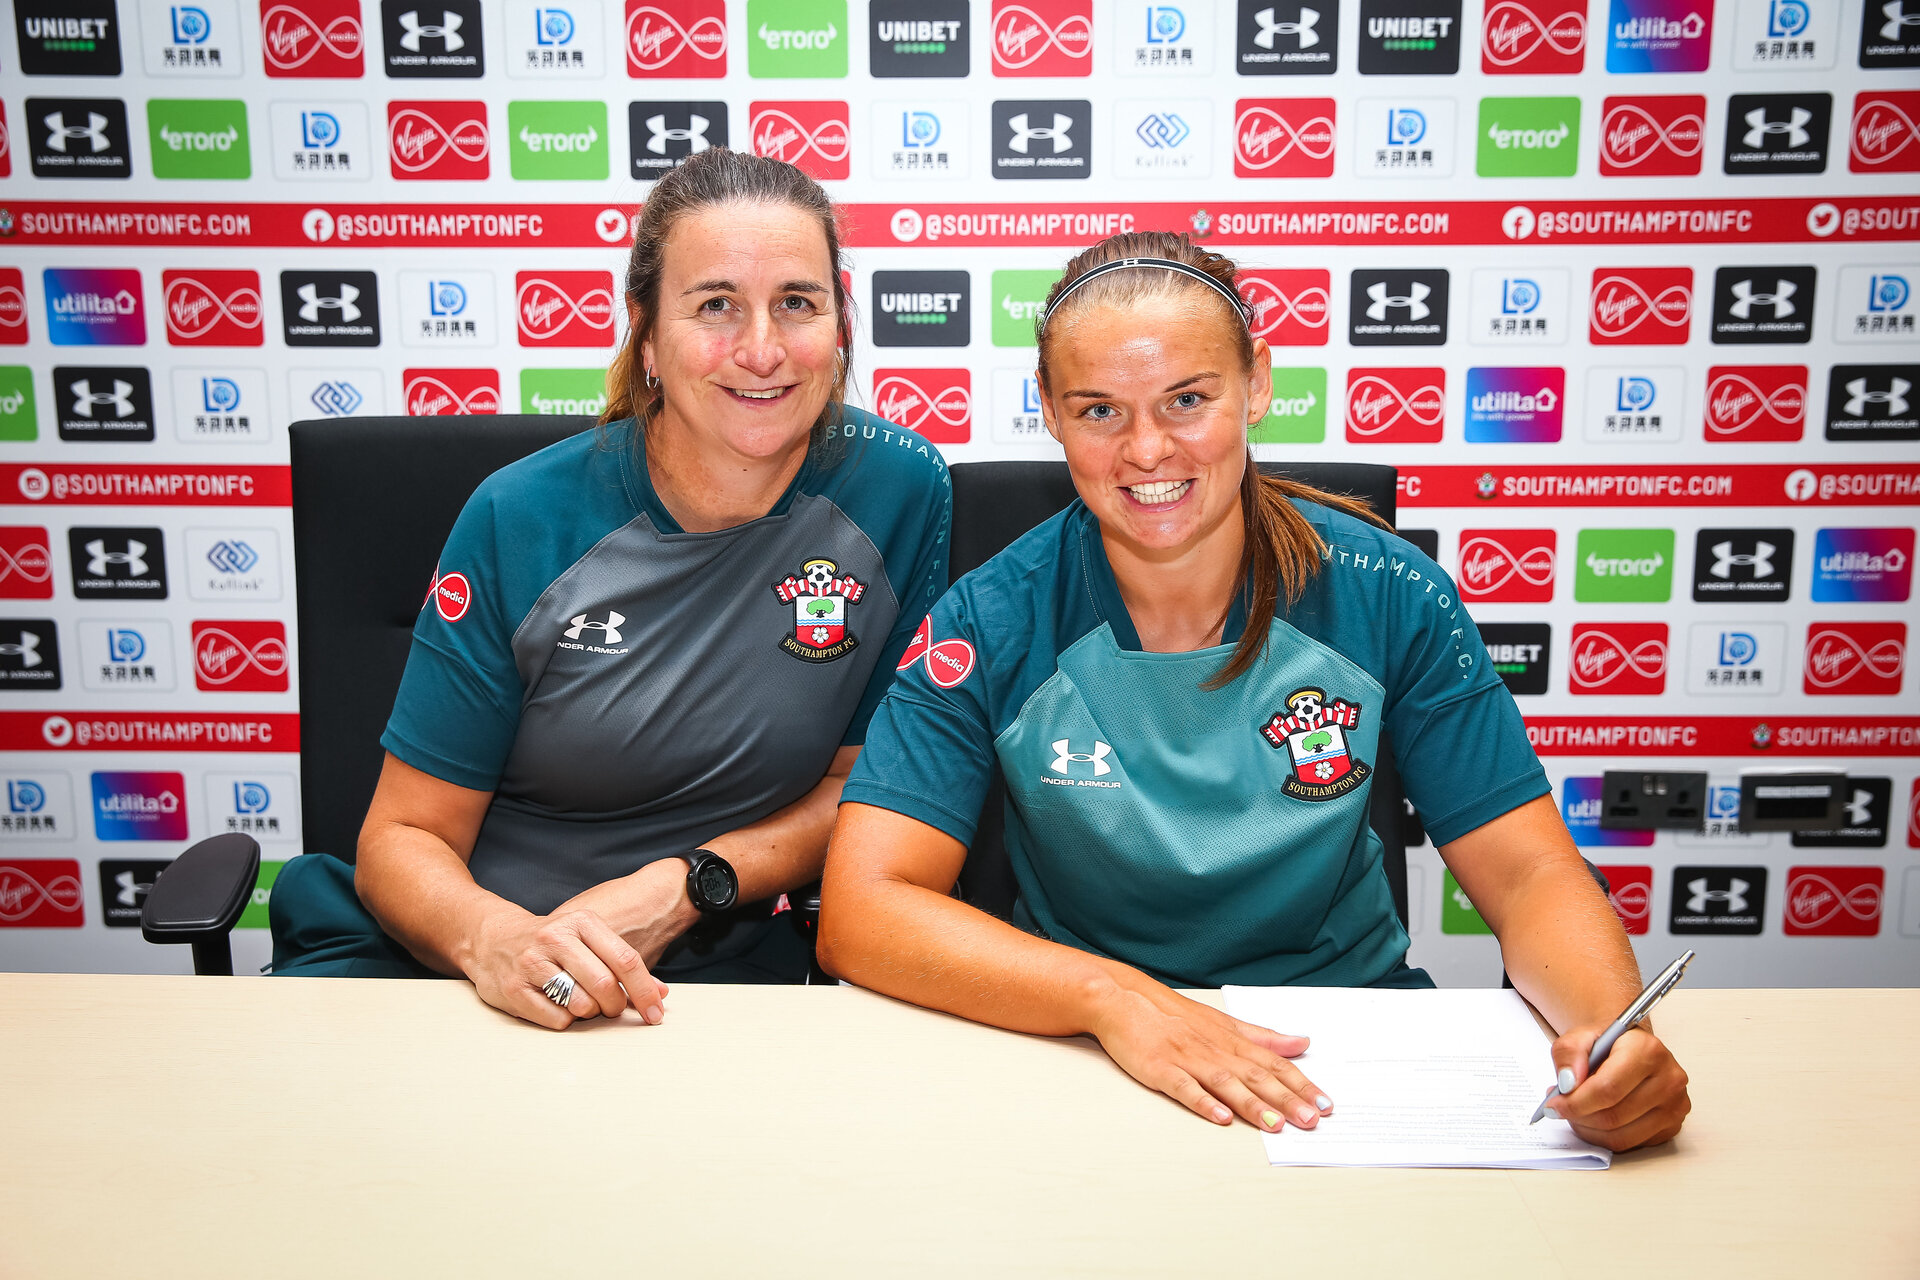 SOUTHAMPTON, ENGLAND - 2 JULY:  Shanon Sievwright (right) signs for Southampton FC pictured at Staplewood Training Ground on July 2, Southampton, England. (Photo by James Bridle - Southampton FC/Southampton FC via Getty Images)